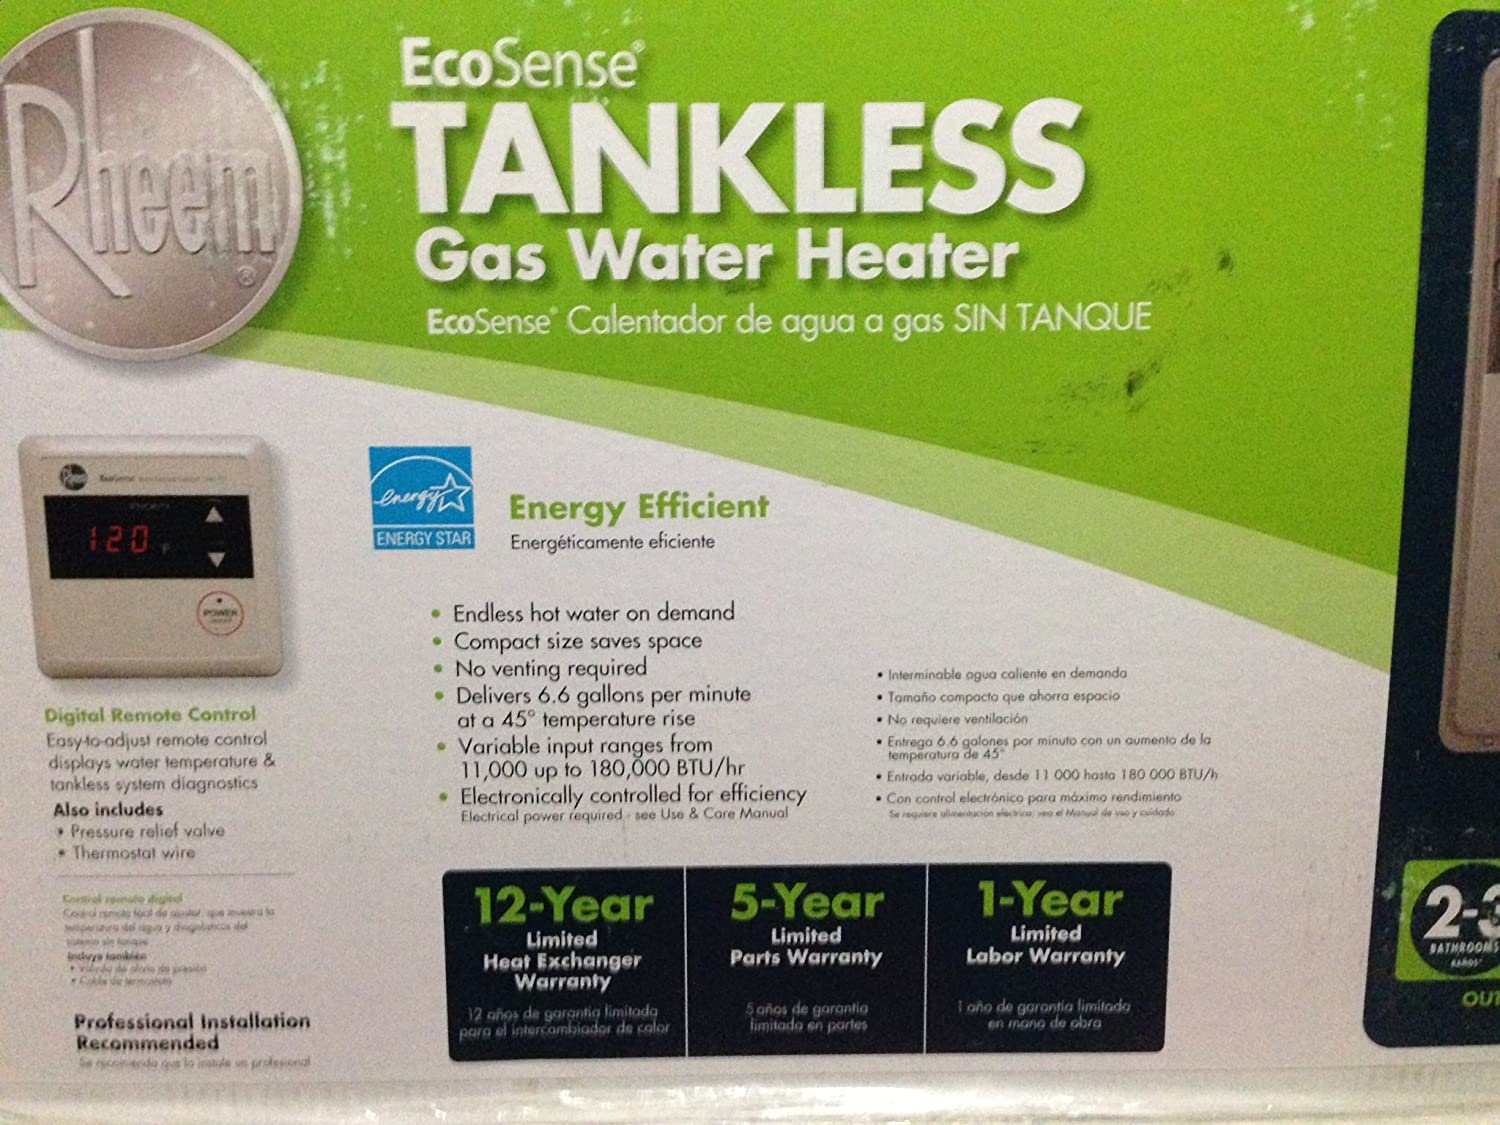 Rheem Ecosense Eco180xp3 8.4 GPM 180, 000 BTU Lp Gas Mid Efficiency Outdoor Tankless Water Heater - - Amazon.com